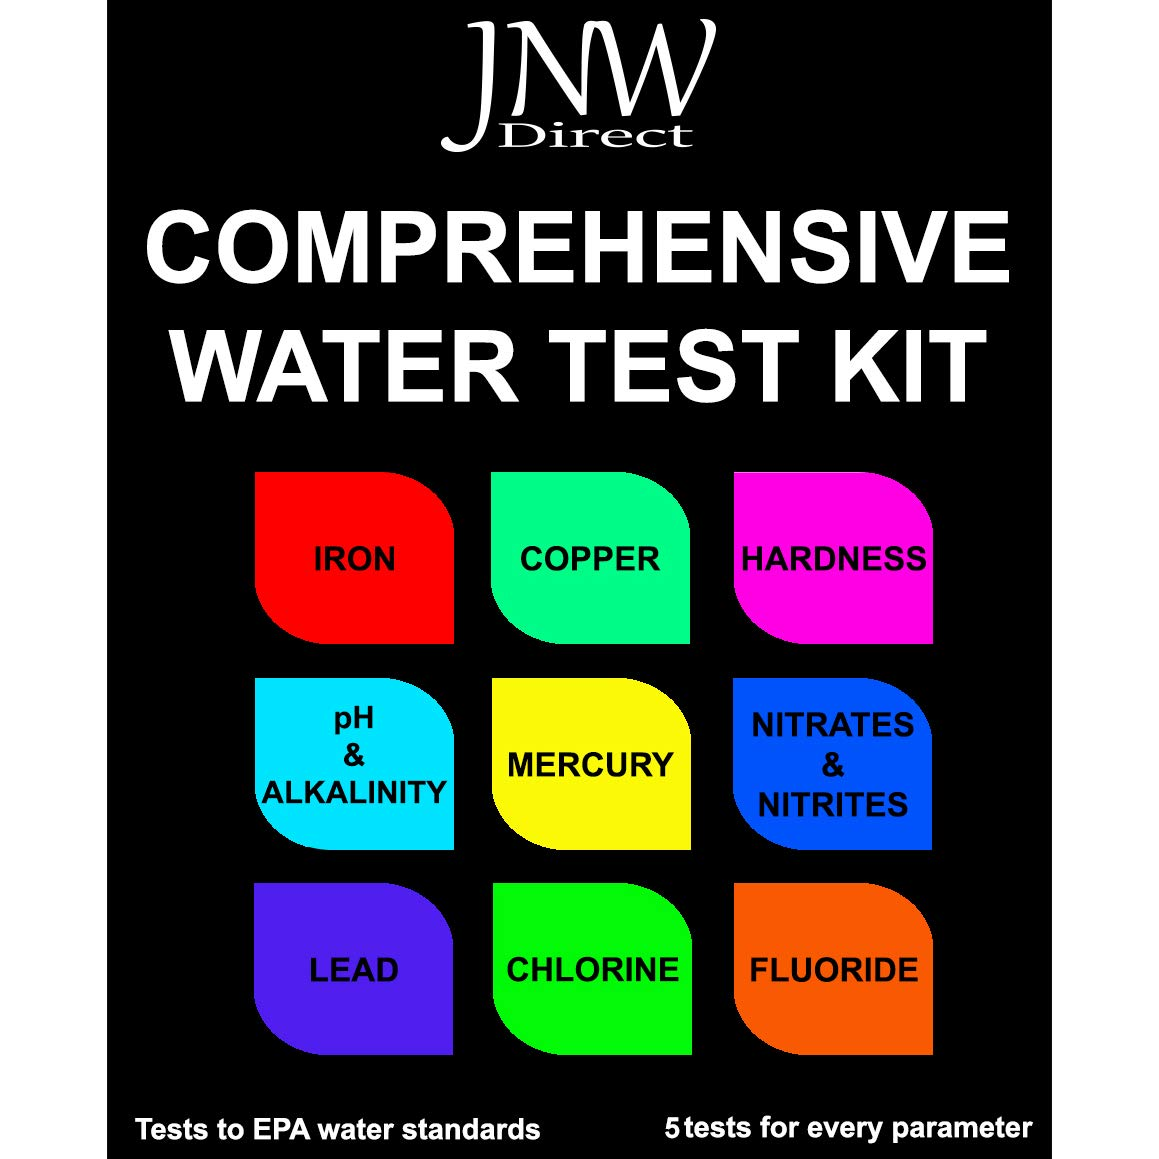 JNW Direct Water Test Kit for Heavy Metals - Lead, Iron, Copper, pH, Hardness, Fluoride, Mercury and More, Best Kit for Drinking Water Testing to EPA Standards